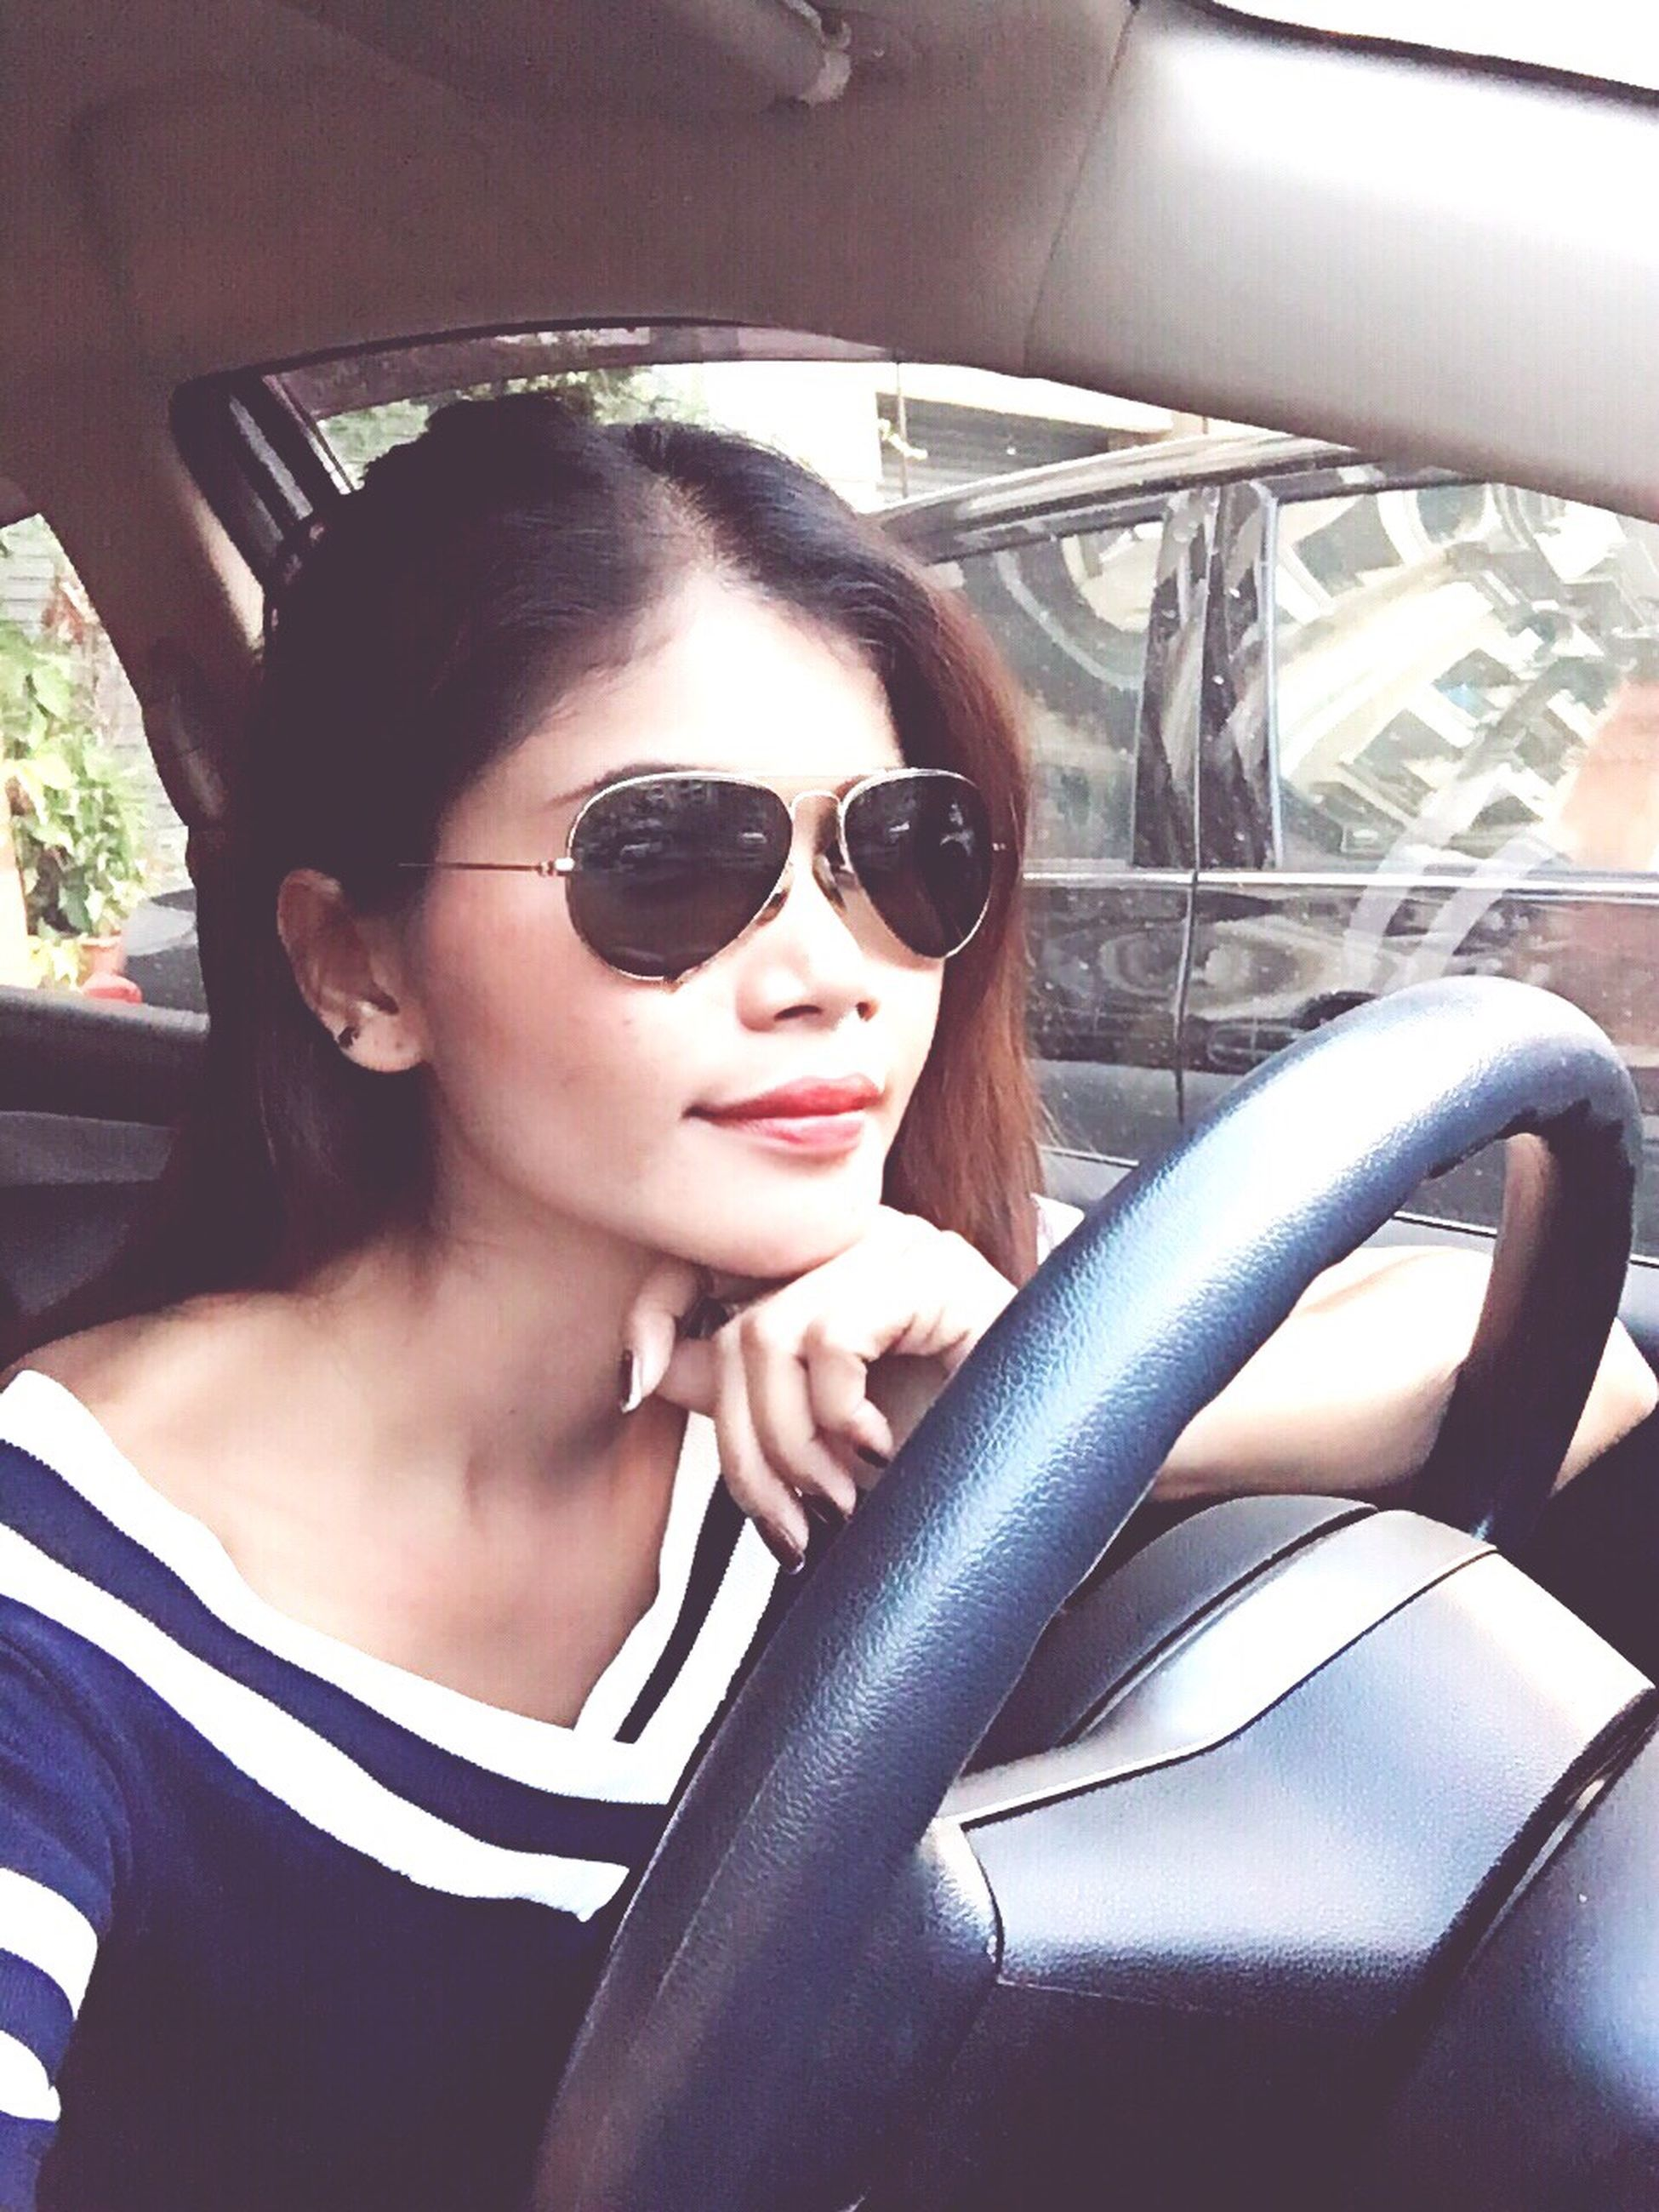 transportation, mode of transport, land vehicle, car, vehicle interior, sunglasses, young adult, looking at camera, portrait, car interior, person, lifestyles, leisure activity, travel, close-up, front view, young women, headshot